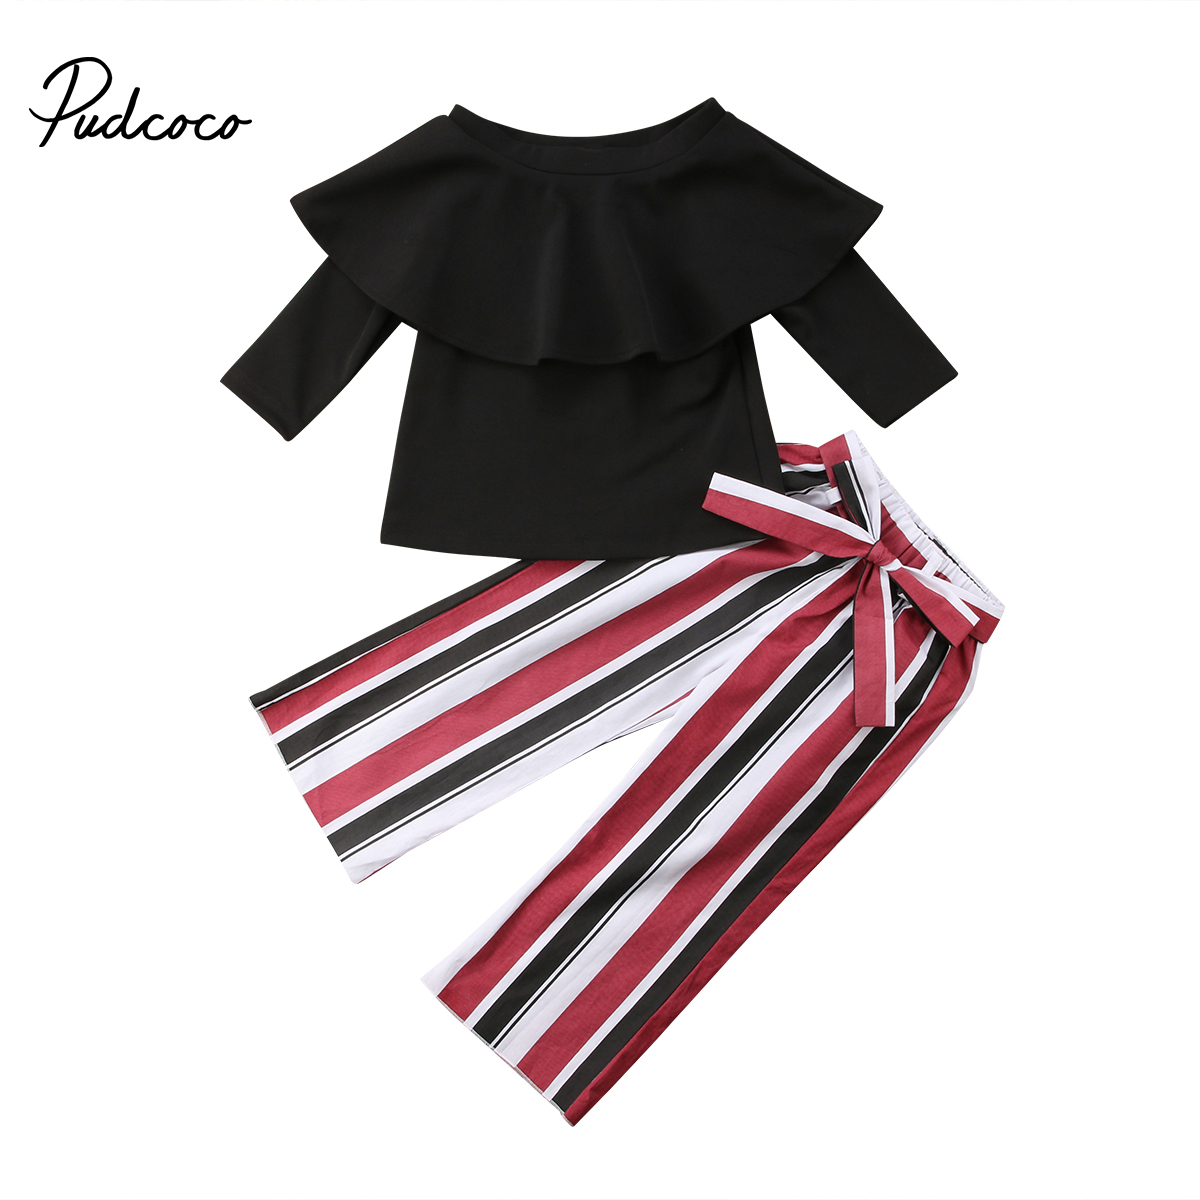 Long Sleeve Tops Blouse Striped Long Pants Fashion Outfit Toddler Kids Child Baby Girls Off Shoulder Ruffle Clothing Sets 1-6T